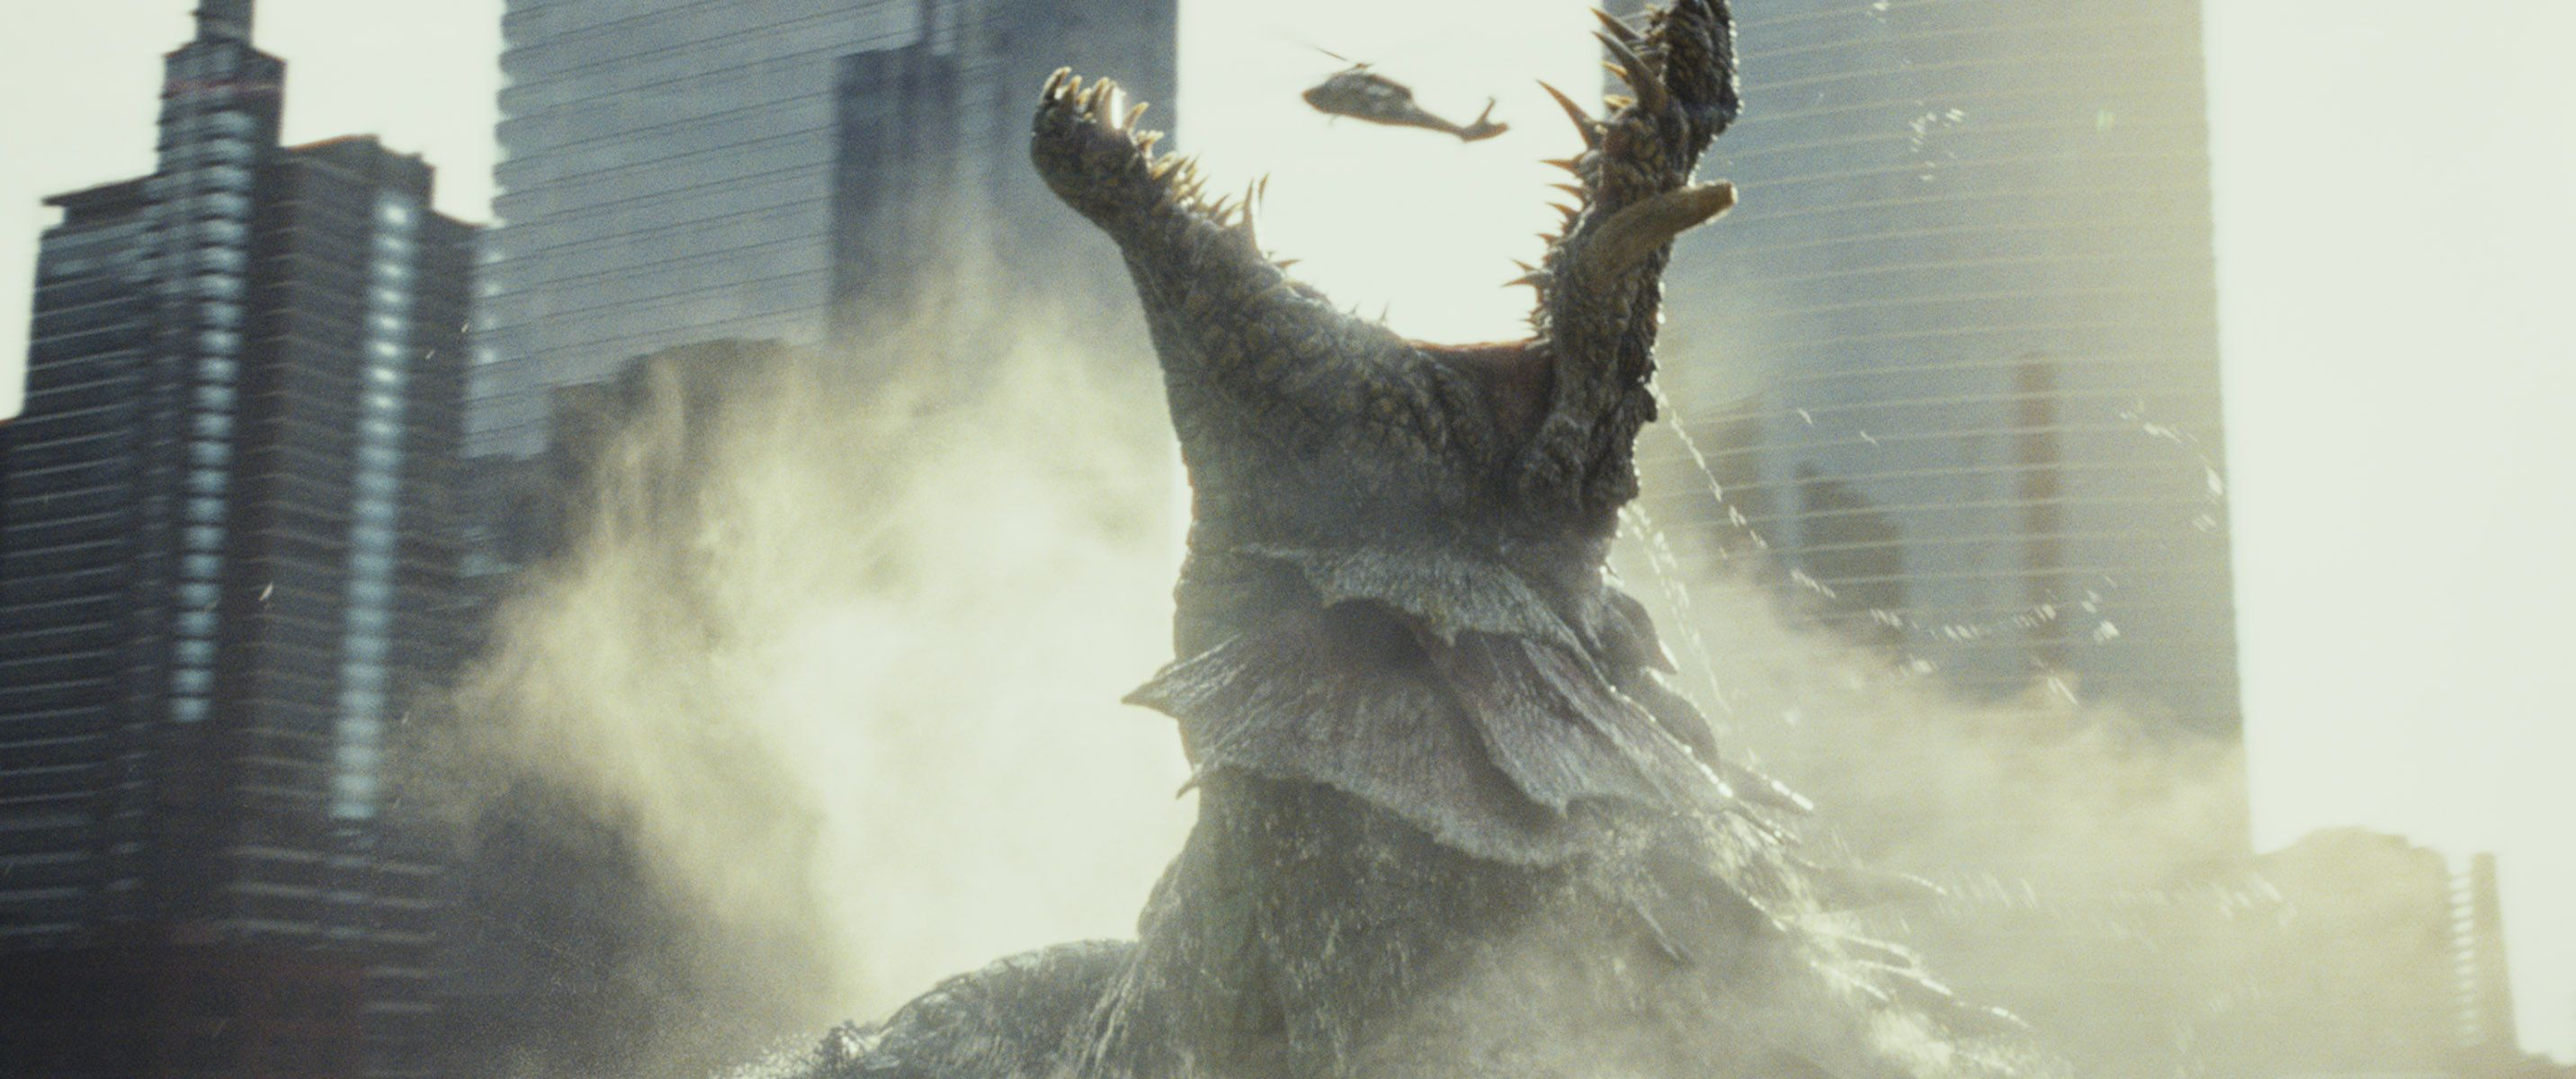 New Rampage Movie Images Reveal The Monsters Collider